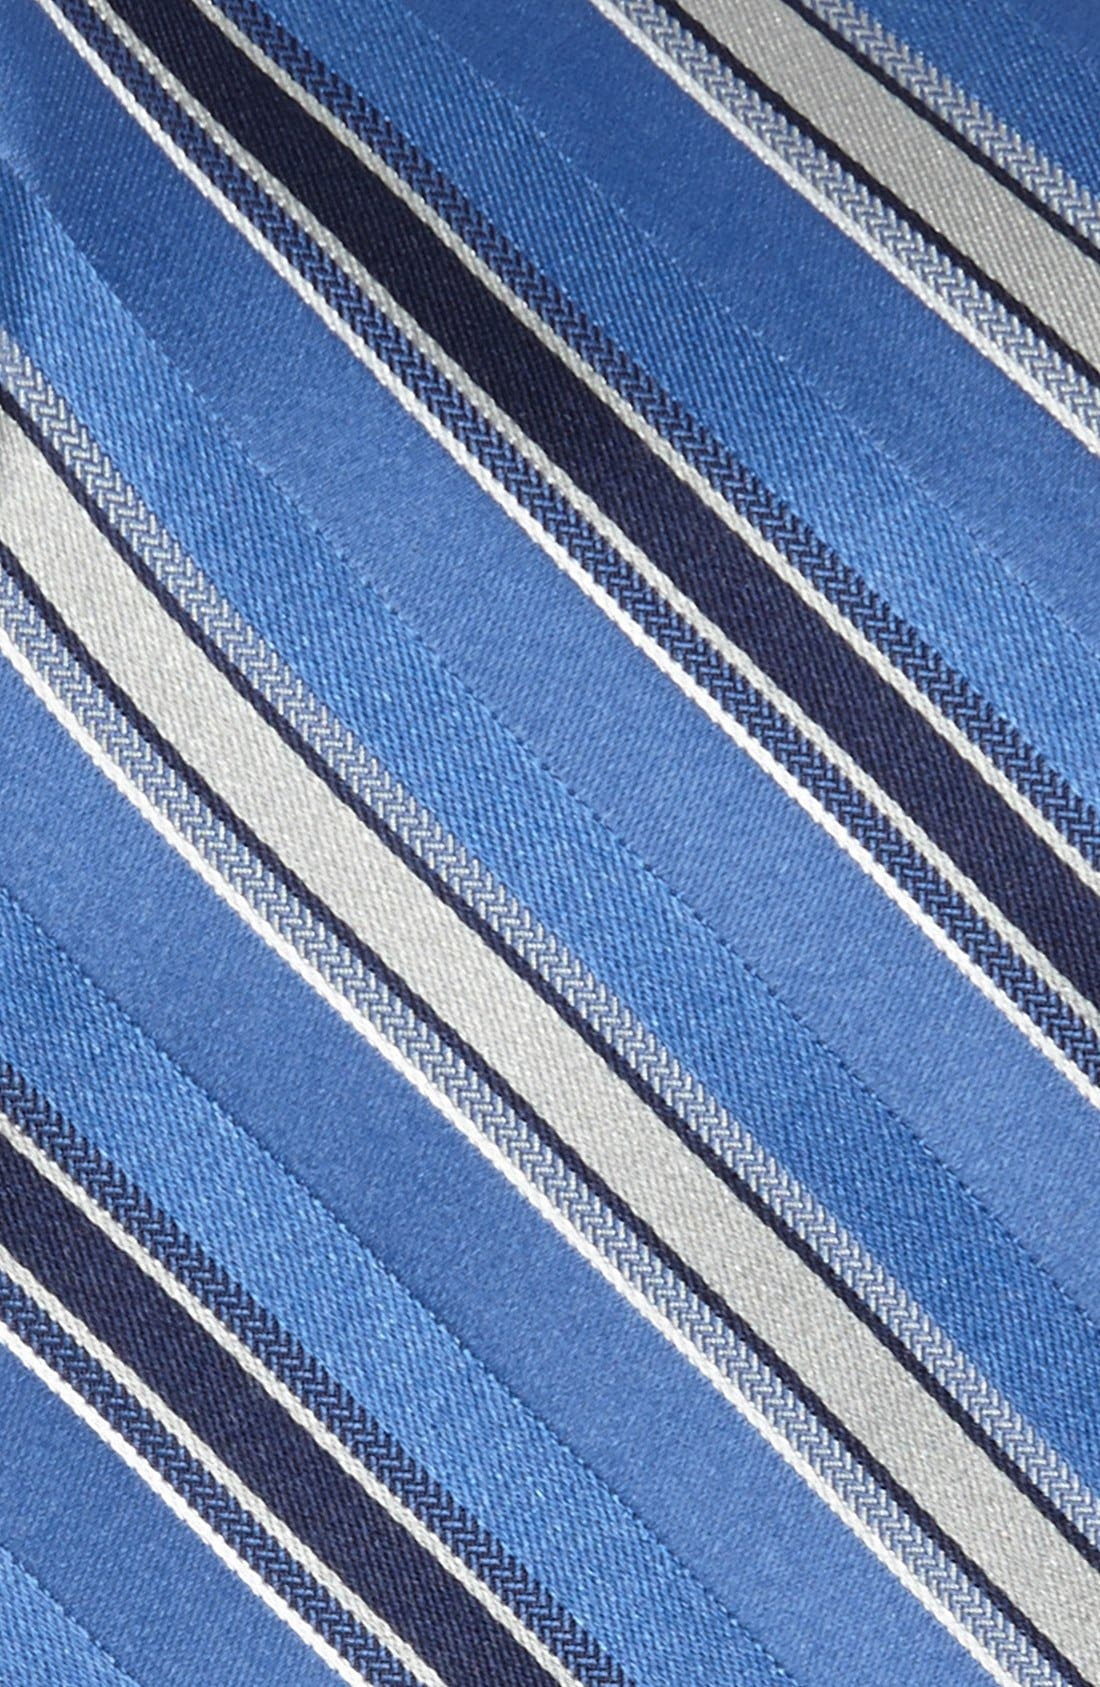 Alternate Image 2  - Michael Kors 'Wilton' Stripe Silk Tie